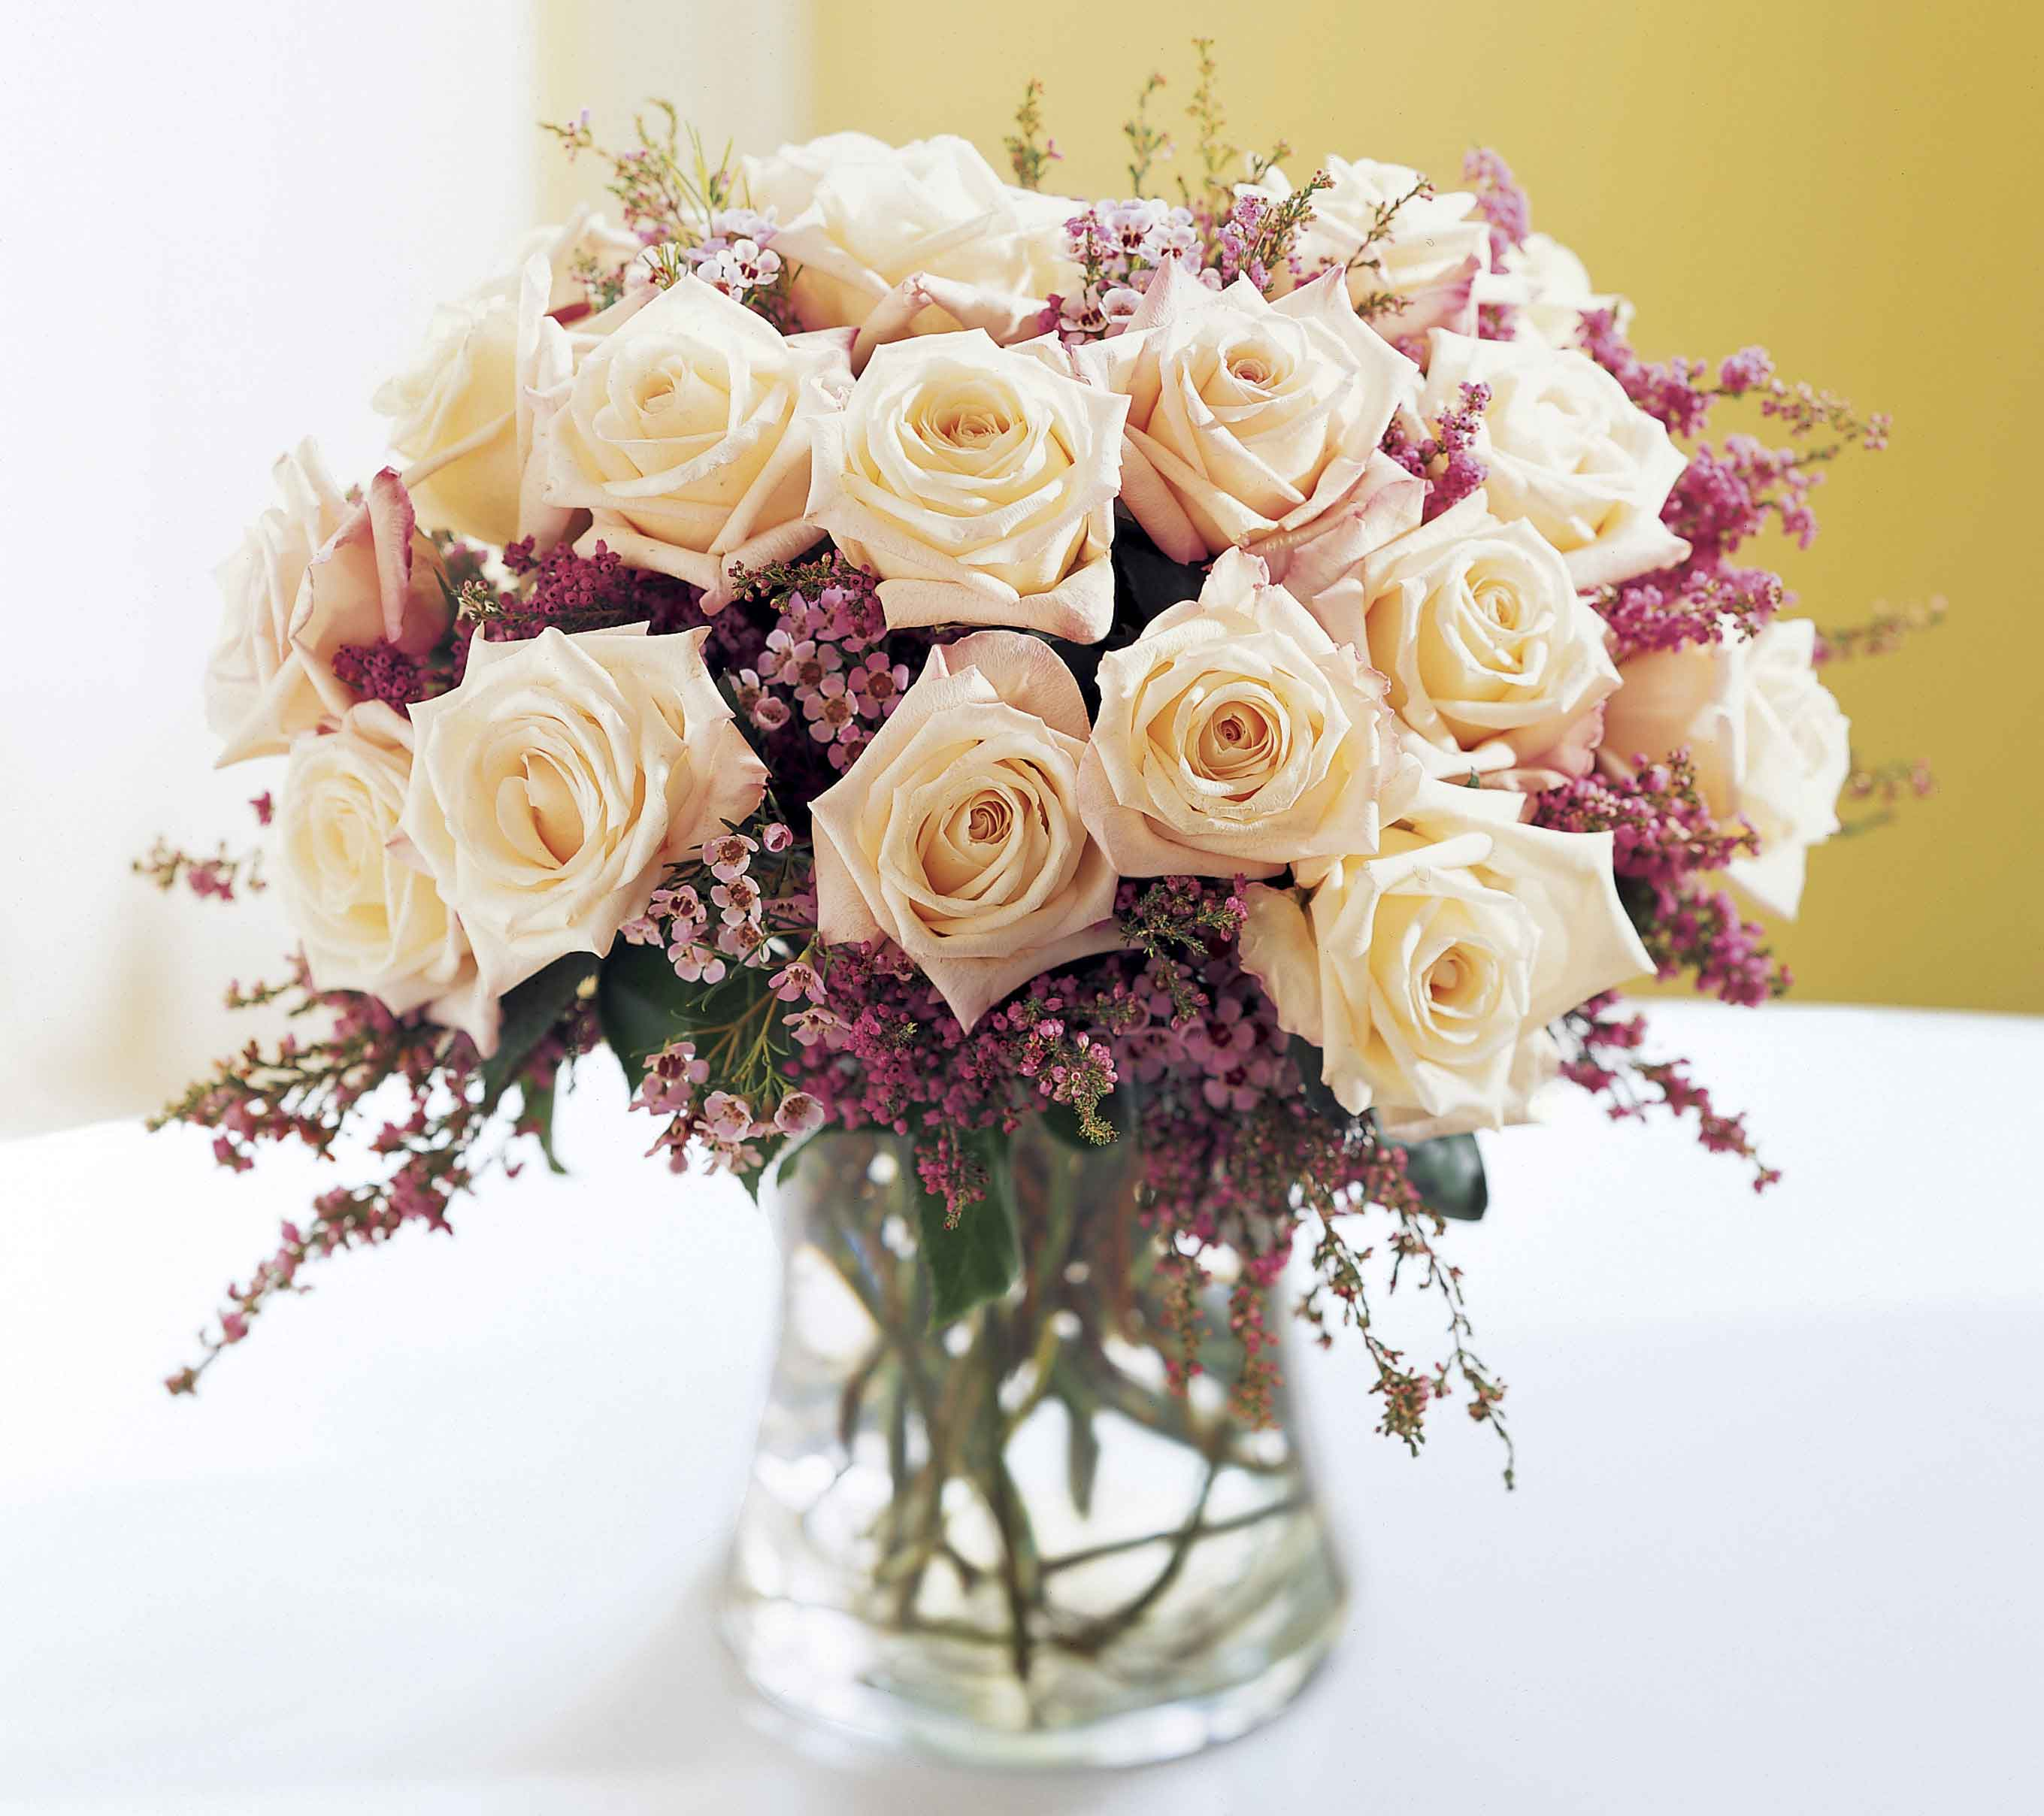 Floral Arrangements how to flower arrangements how to make flower arrangements